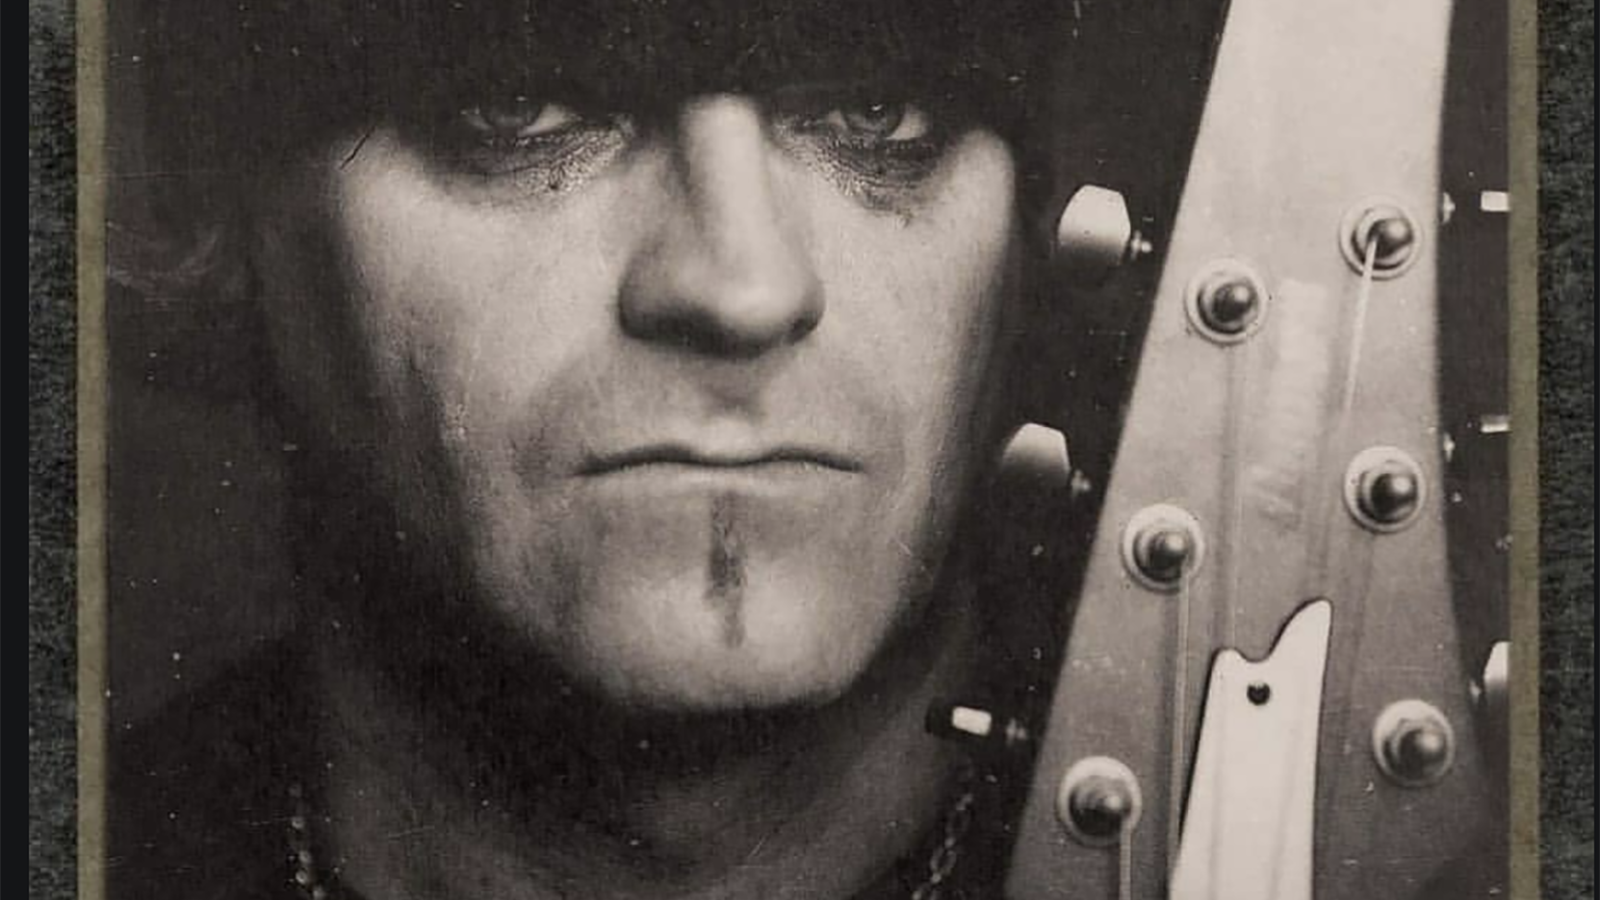 """Celtic Frost's Tom G. Warrior Slams Metallica for """"Humiliating"""" Covers"""